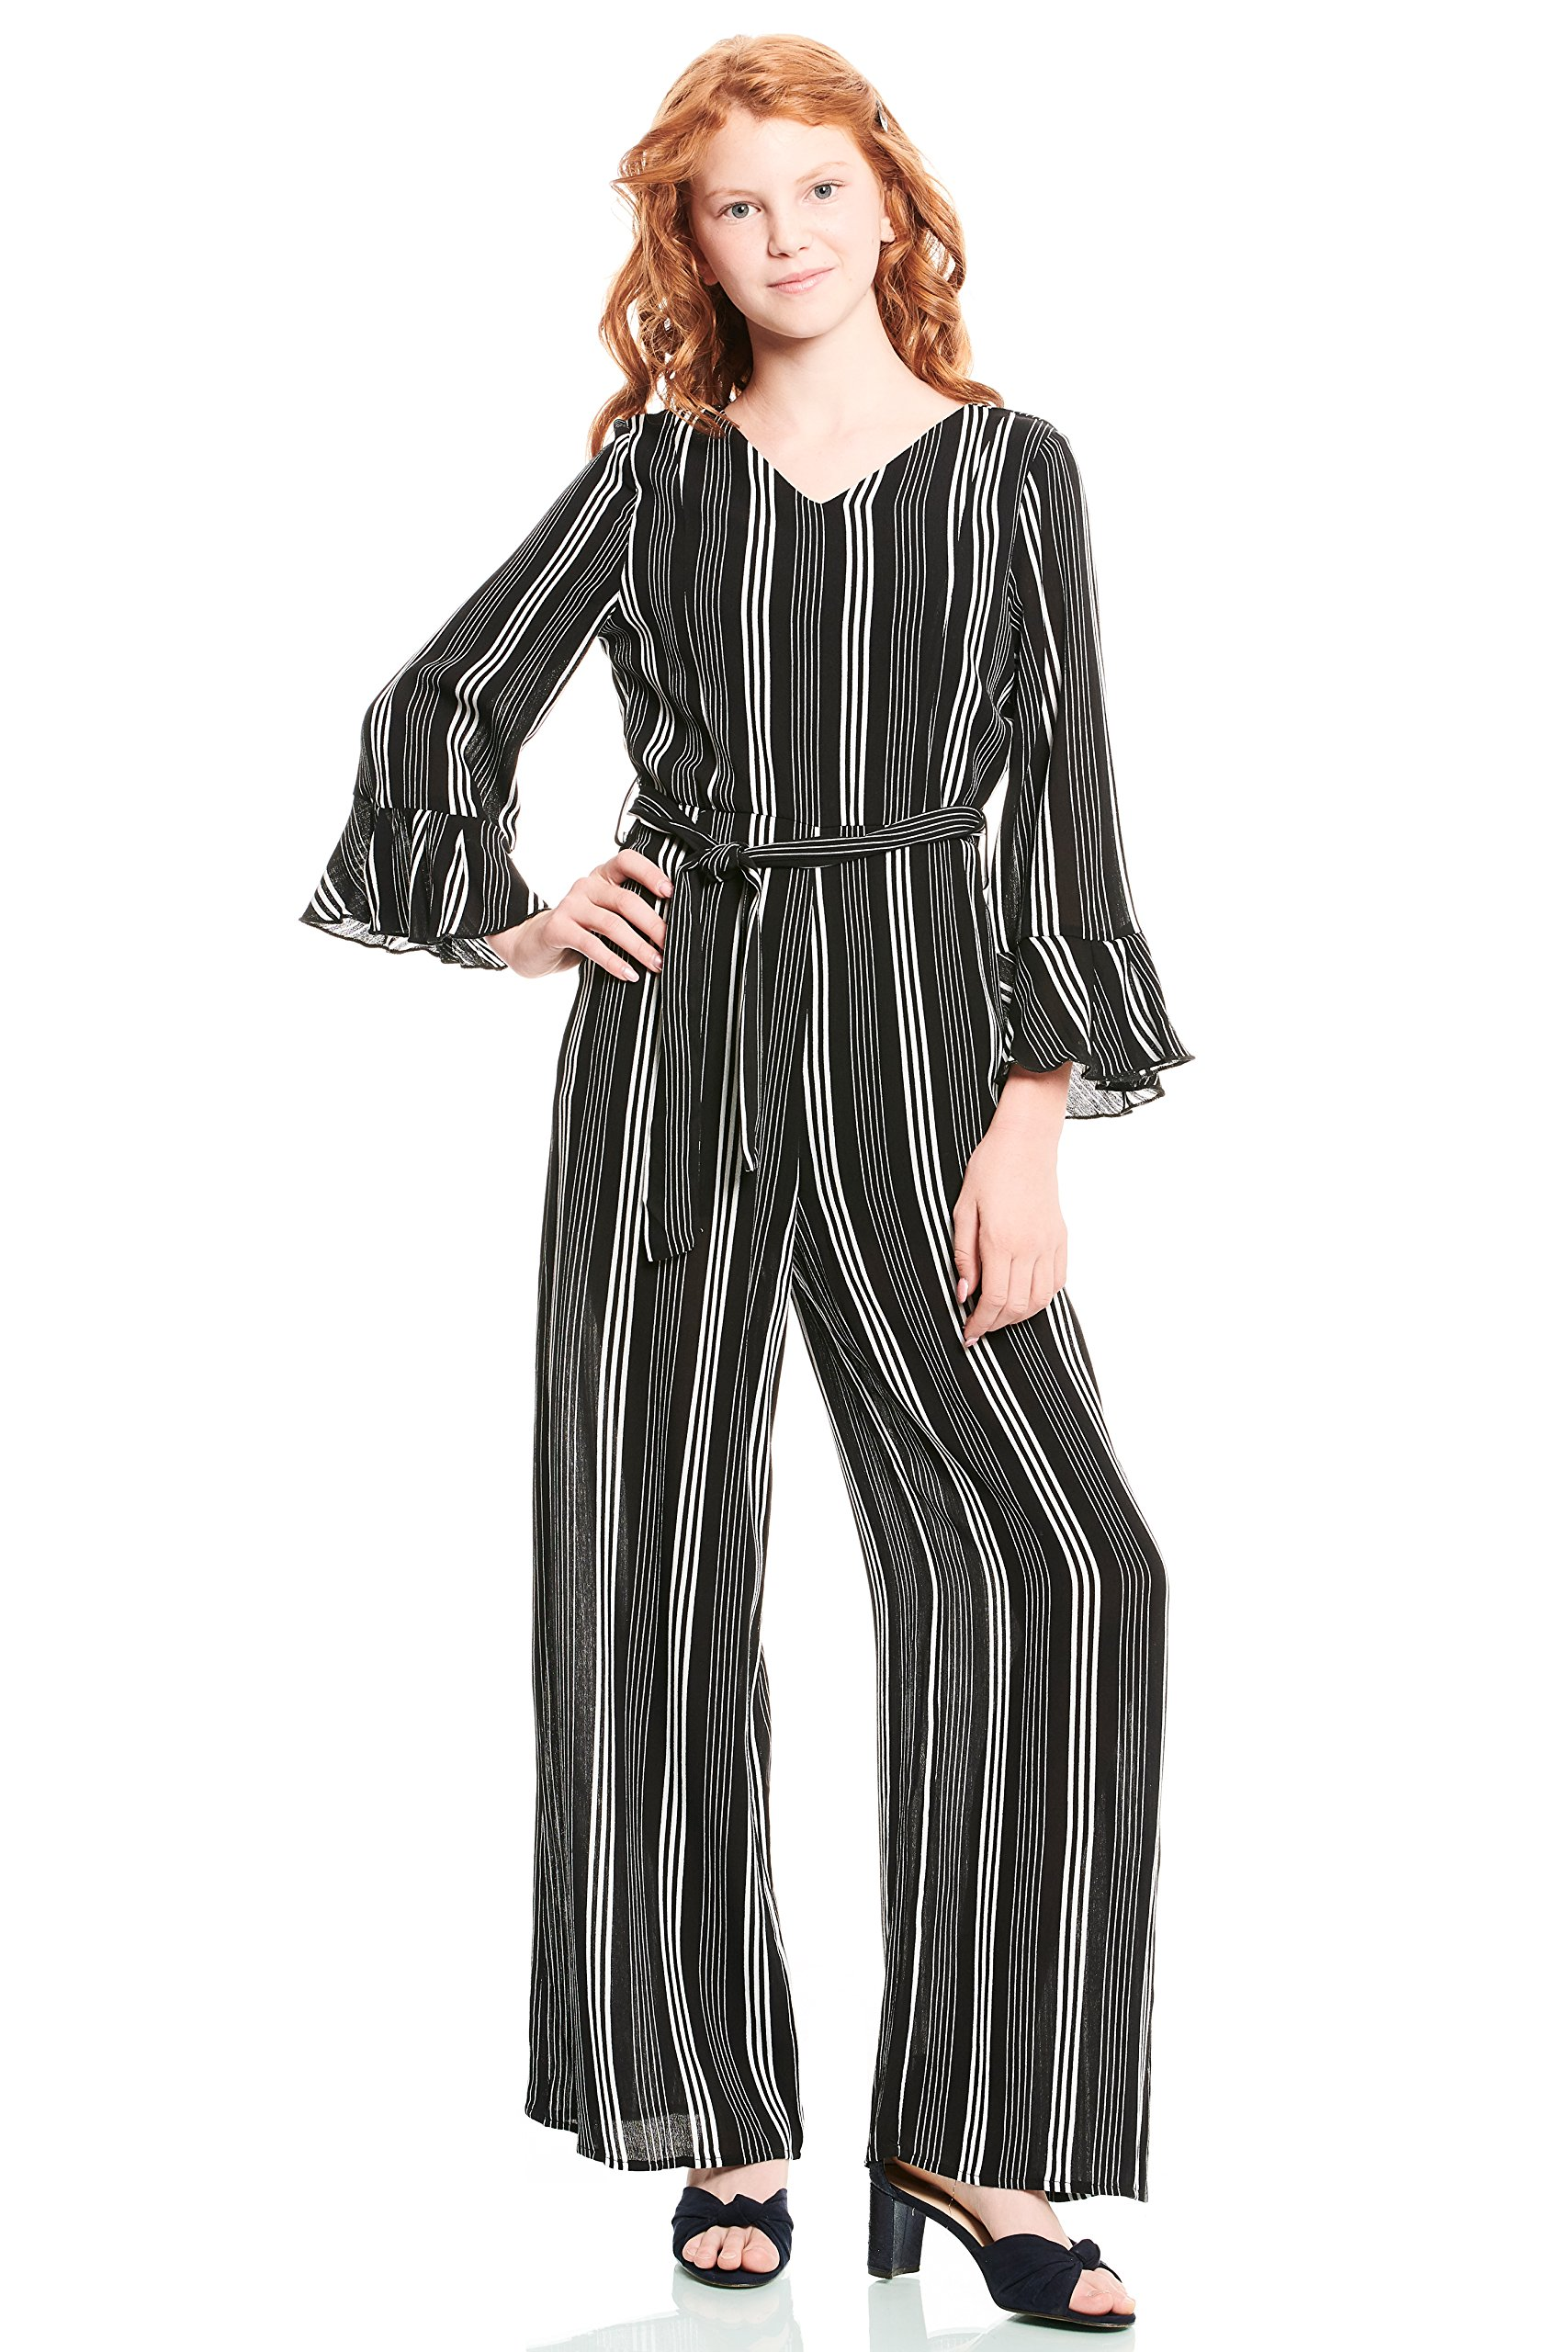 Truly Me Big Girls Tween Printed Jumpsuits (with Many Options), 7-16 (Black Stripe, 16)